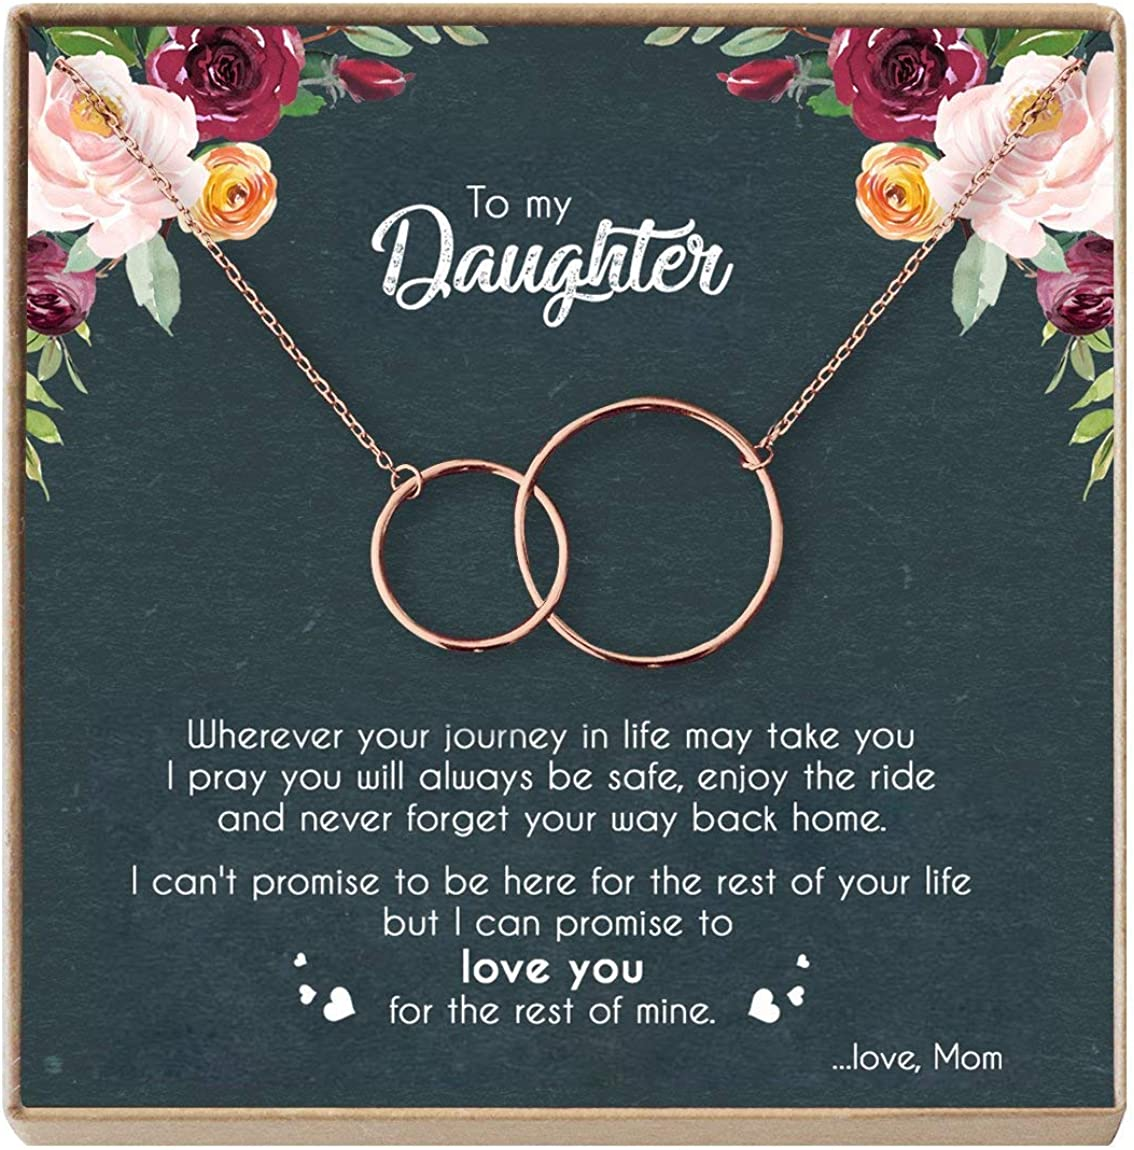 Amazon Com Mother Daughter Necklace Sterling Silver Two Interlocking Infinity Double Circles Birthday Gifts For Daughter From Mom Mom Daughter Jewelry Gift Nl Rose Gold Christmas Gift Ideas For Her Clothing